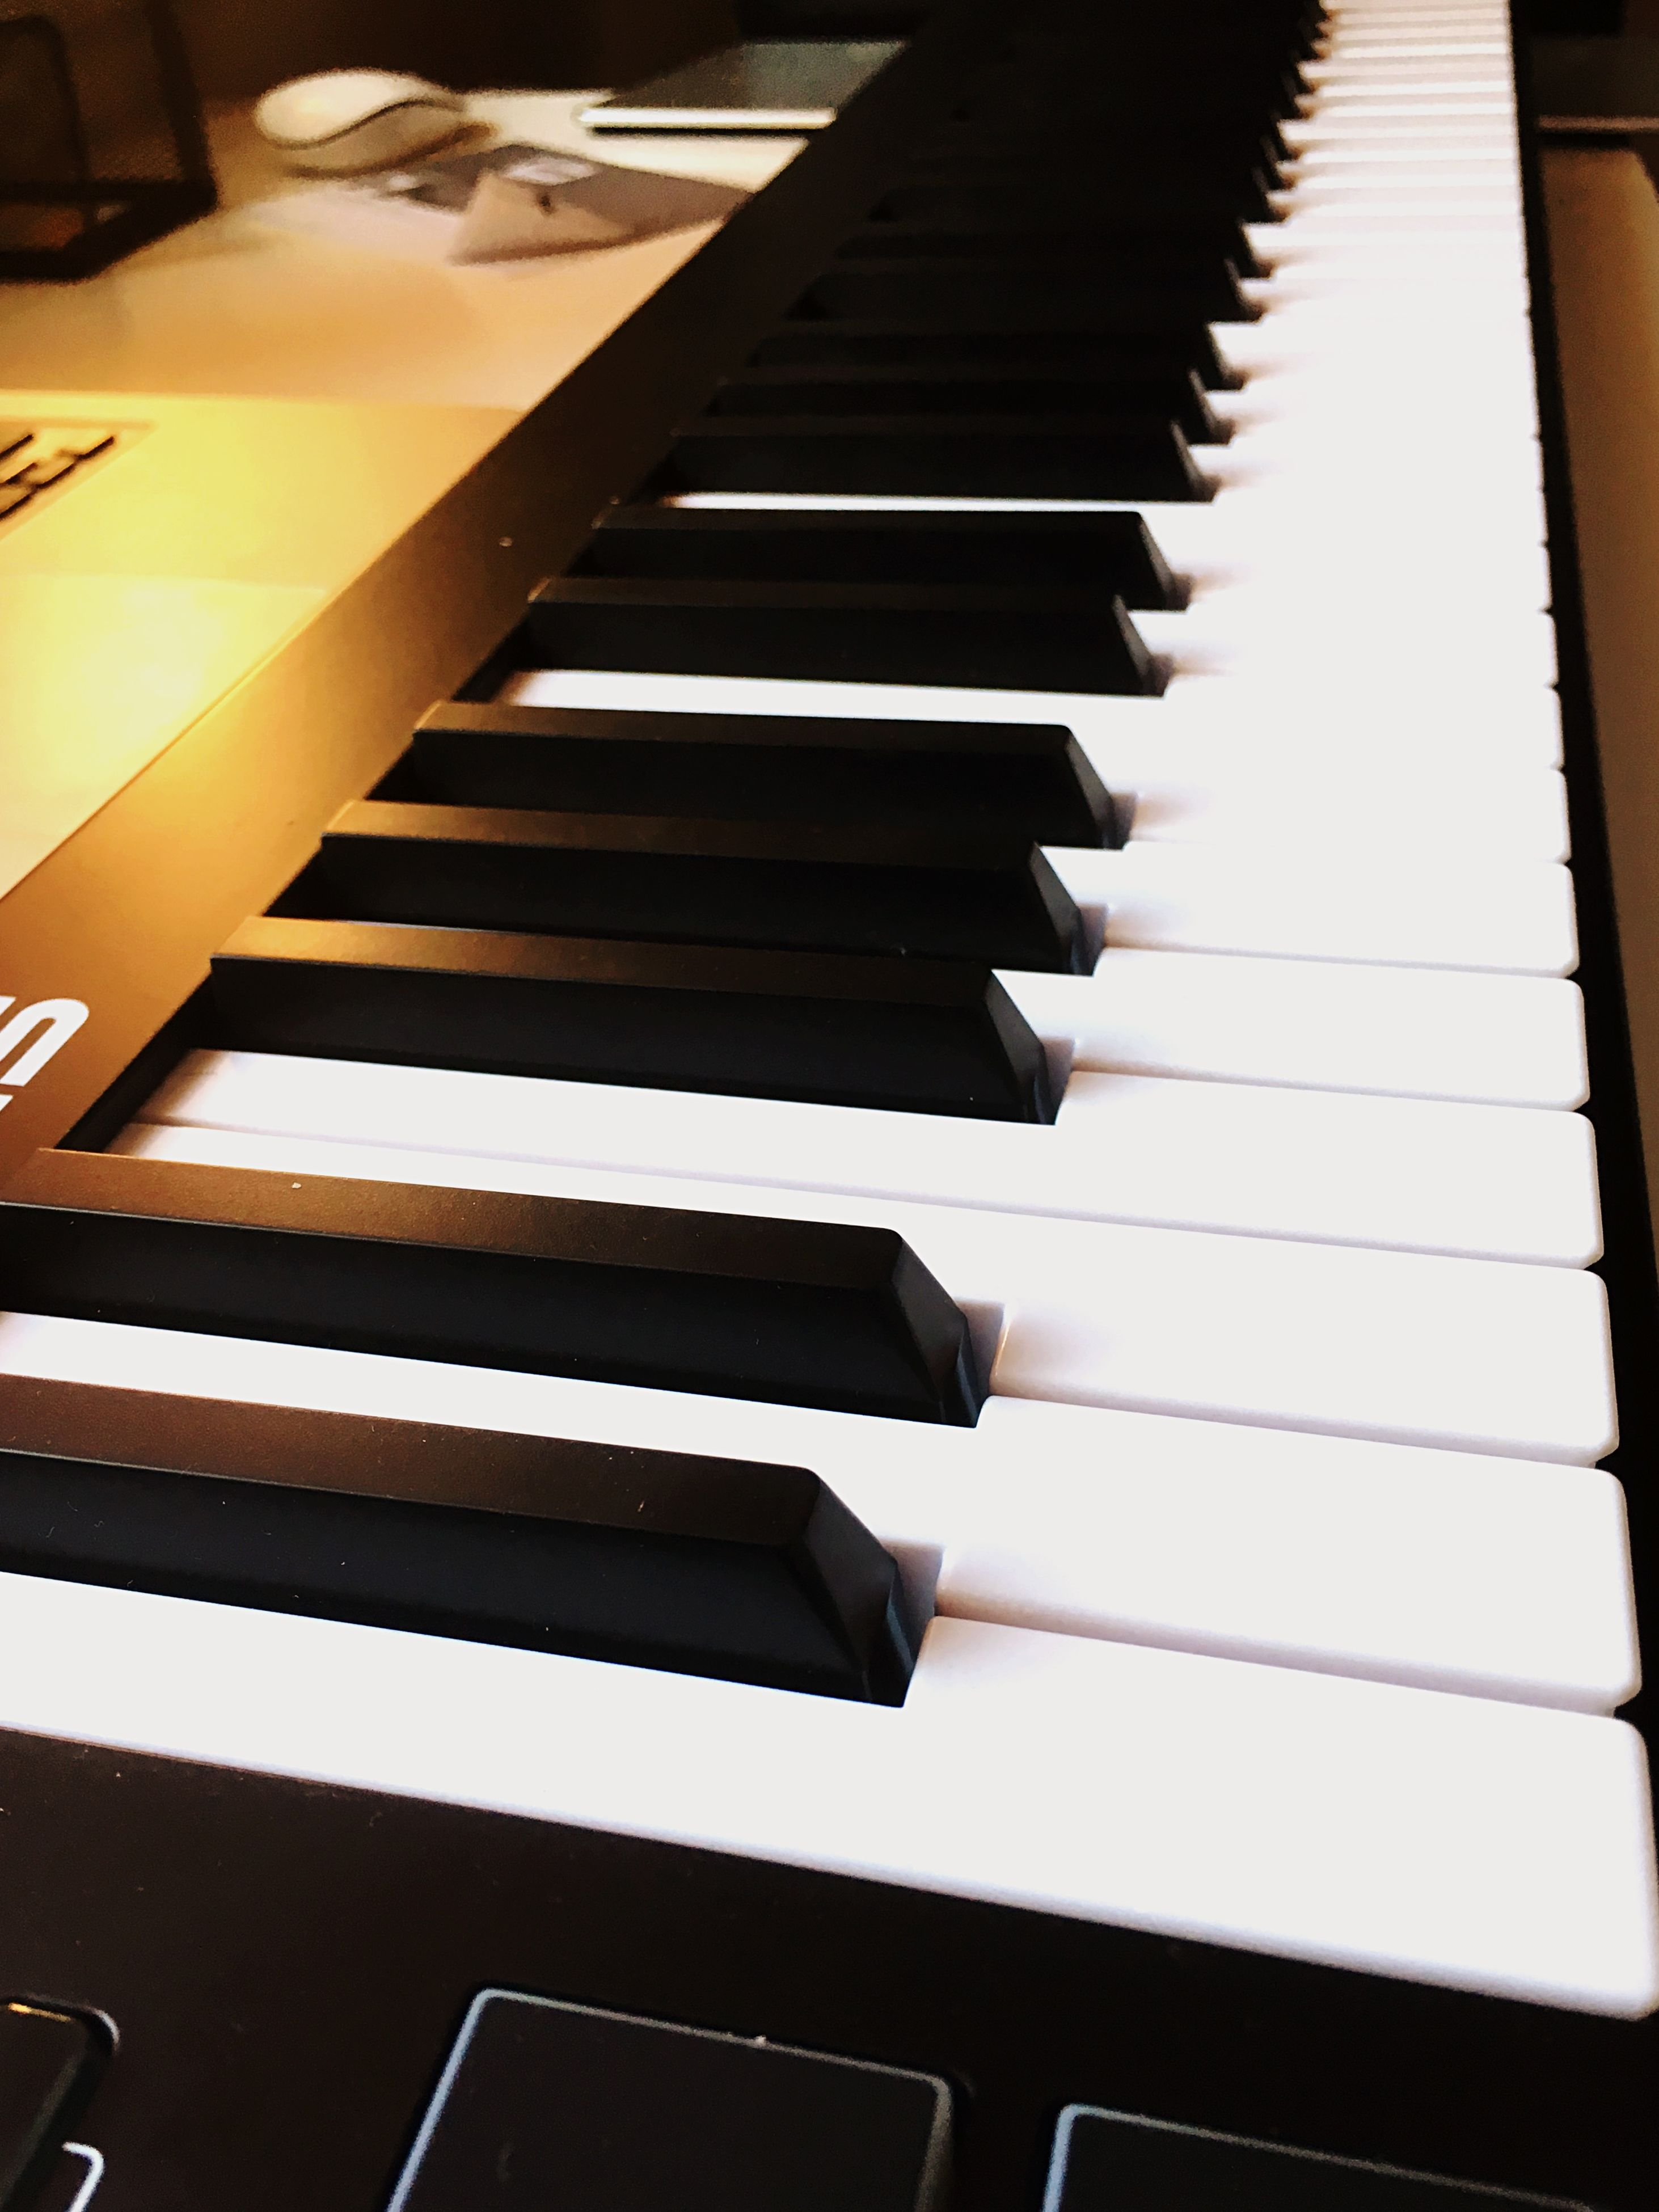 indoors, piano key, music, close-up, musical instrument, high angle view, paper, piano, in a row, musical equipment, no people, part of, education, arts culture and entertainment, book, white color, still life, page, technology, cropped